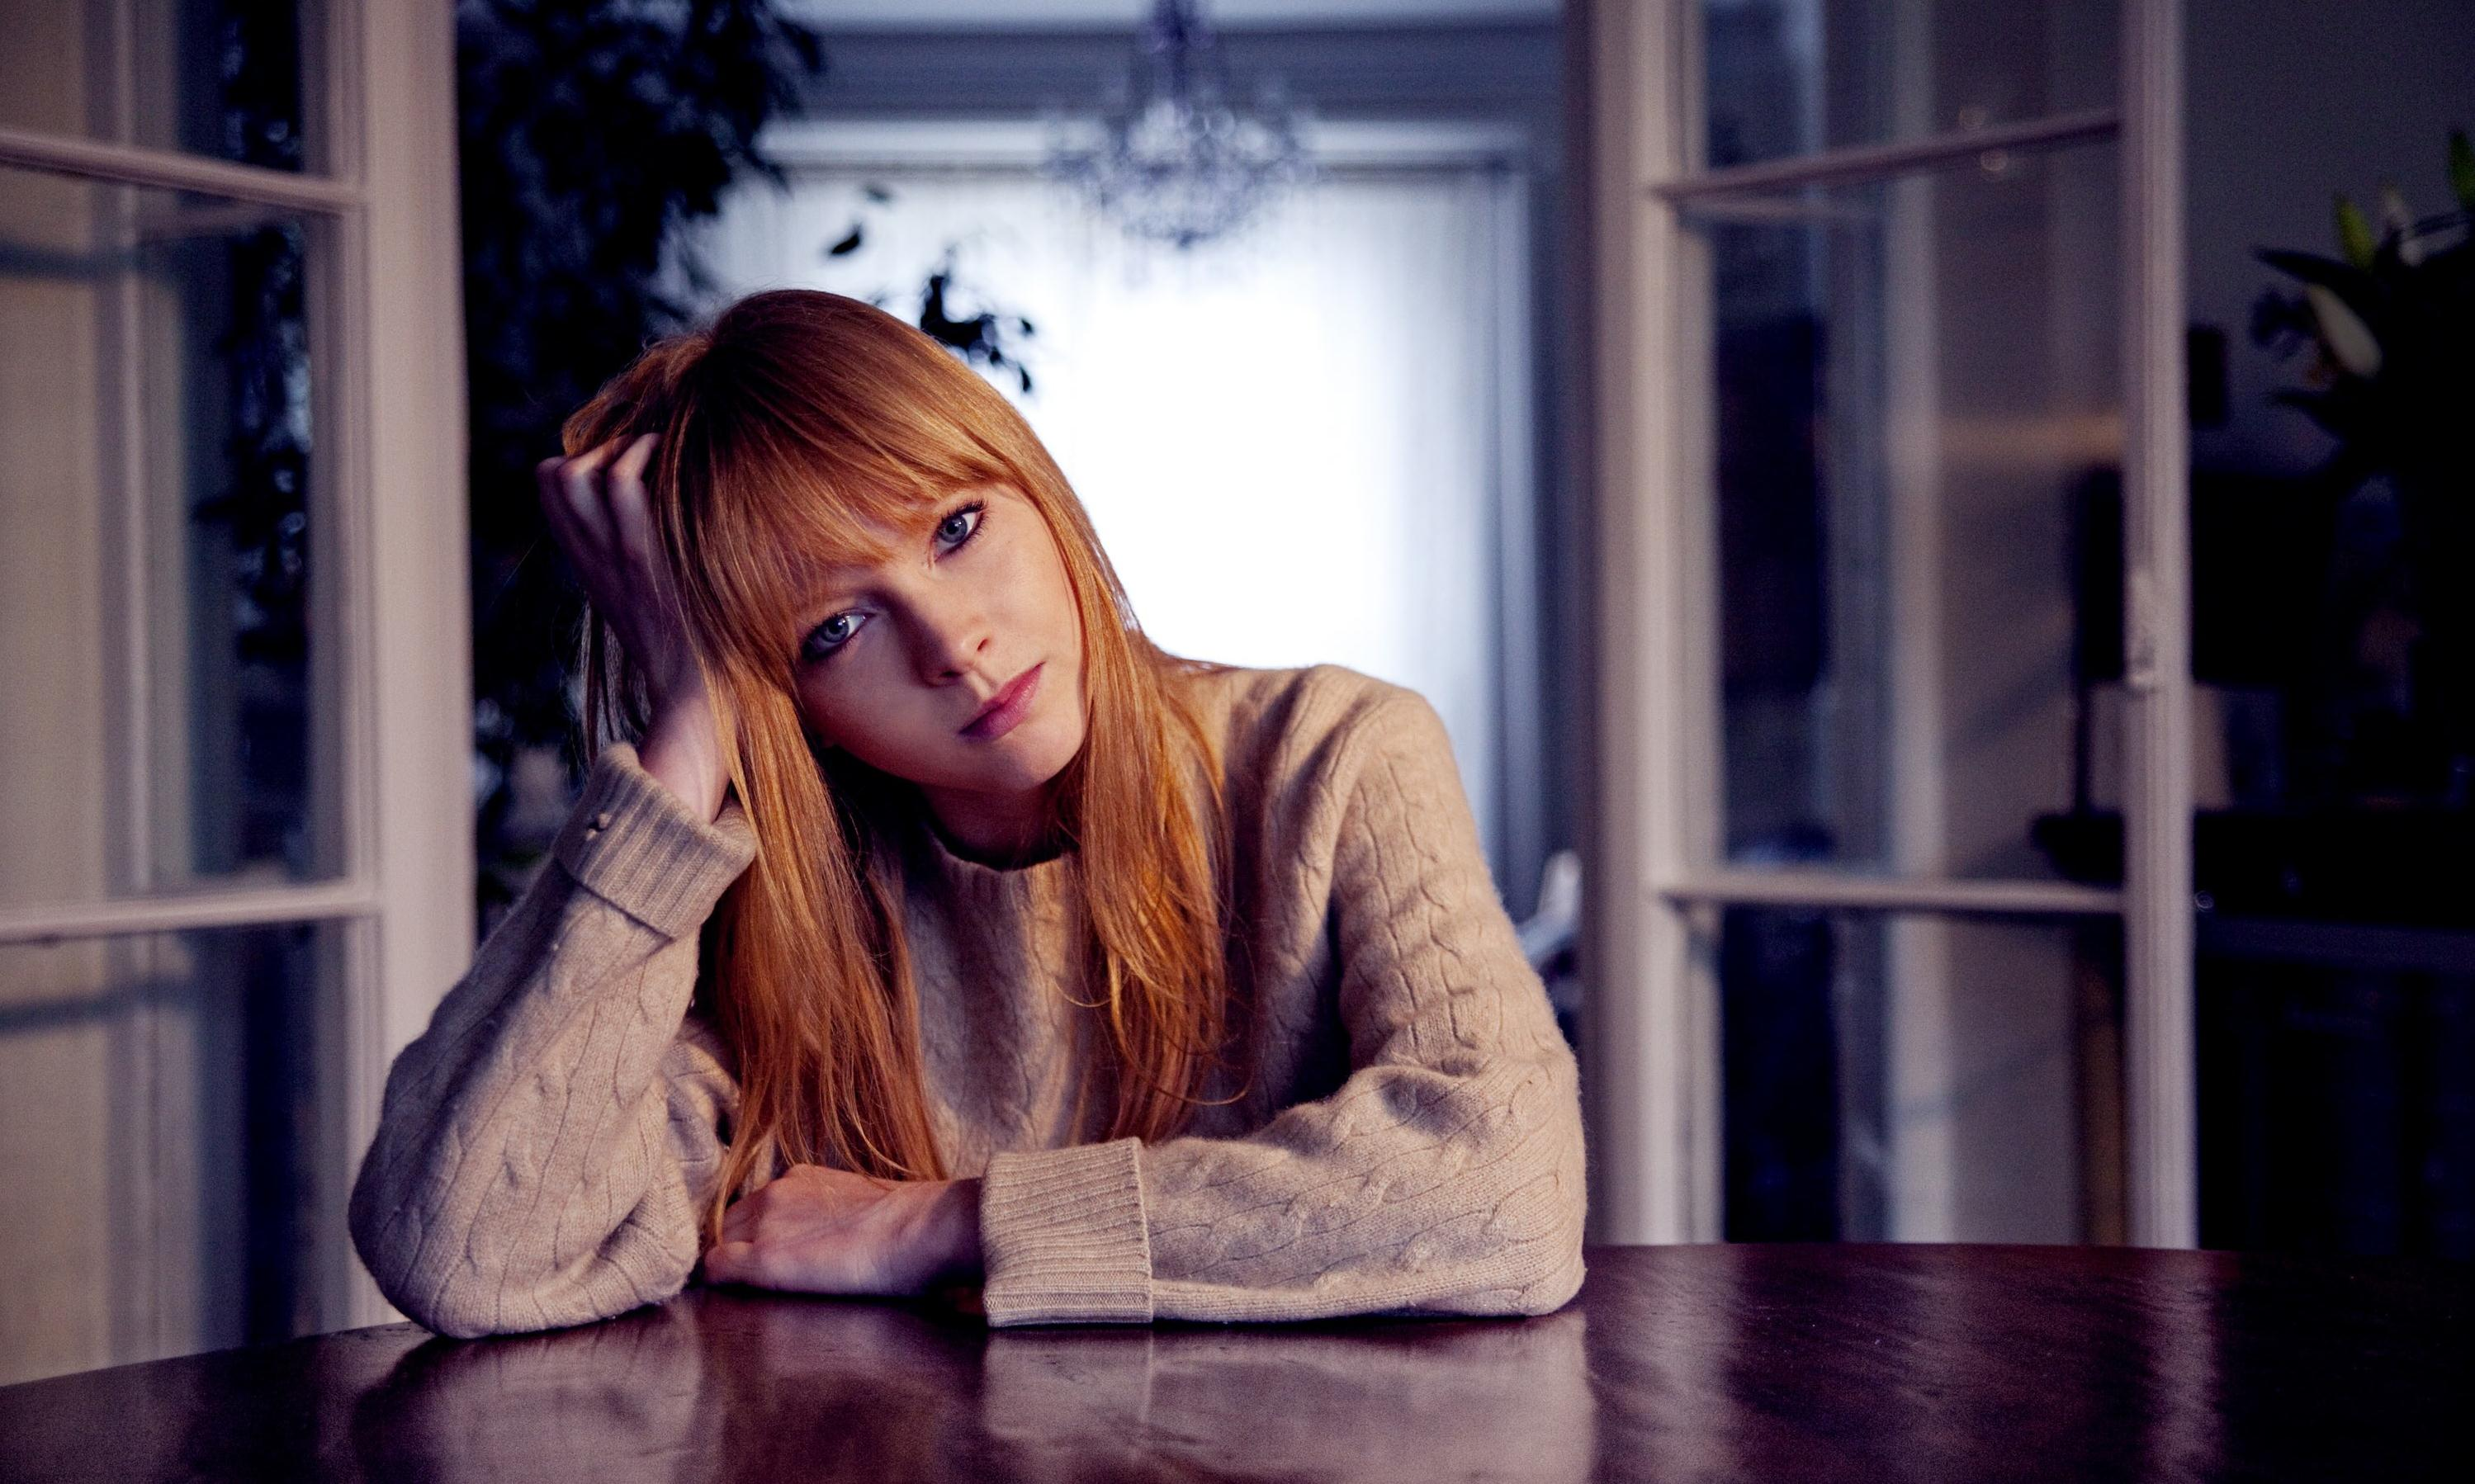 Cantante Británica Lucy Rose vendrá a Chile con nuevo disco y documental